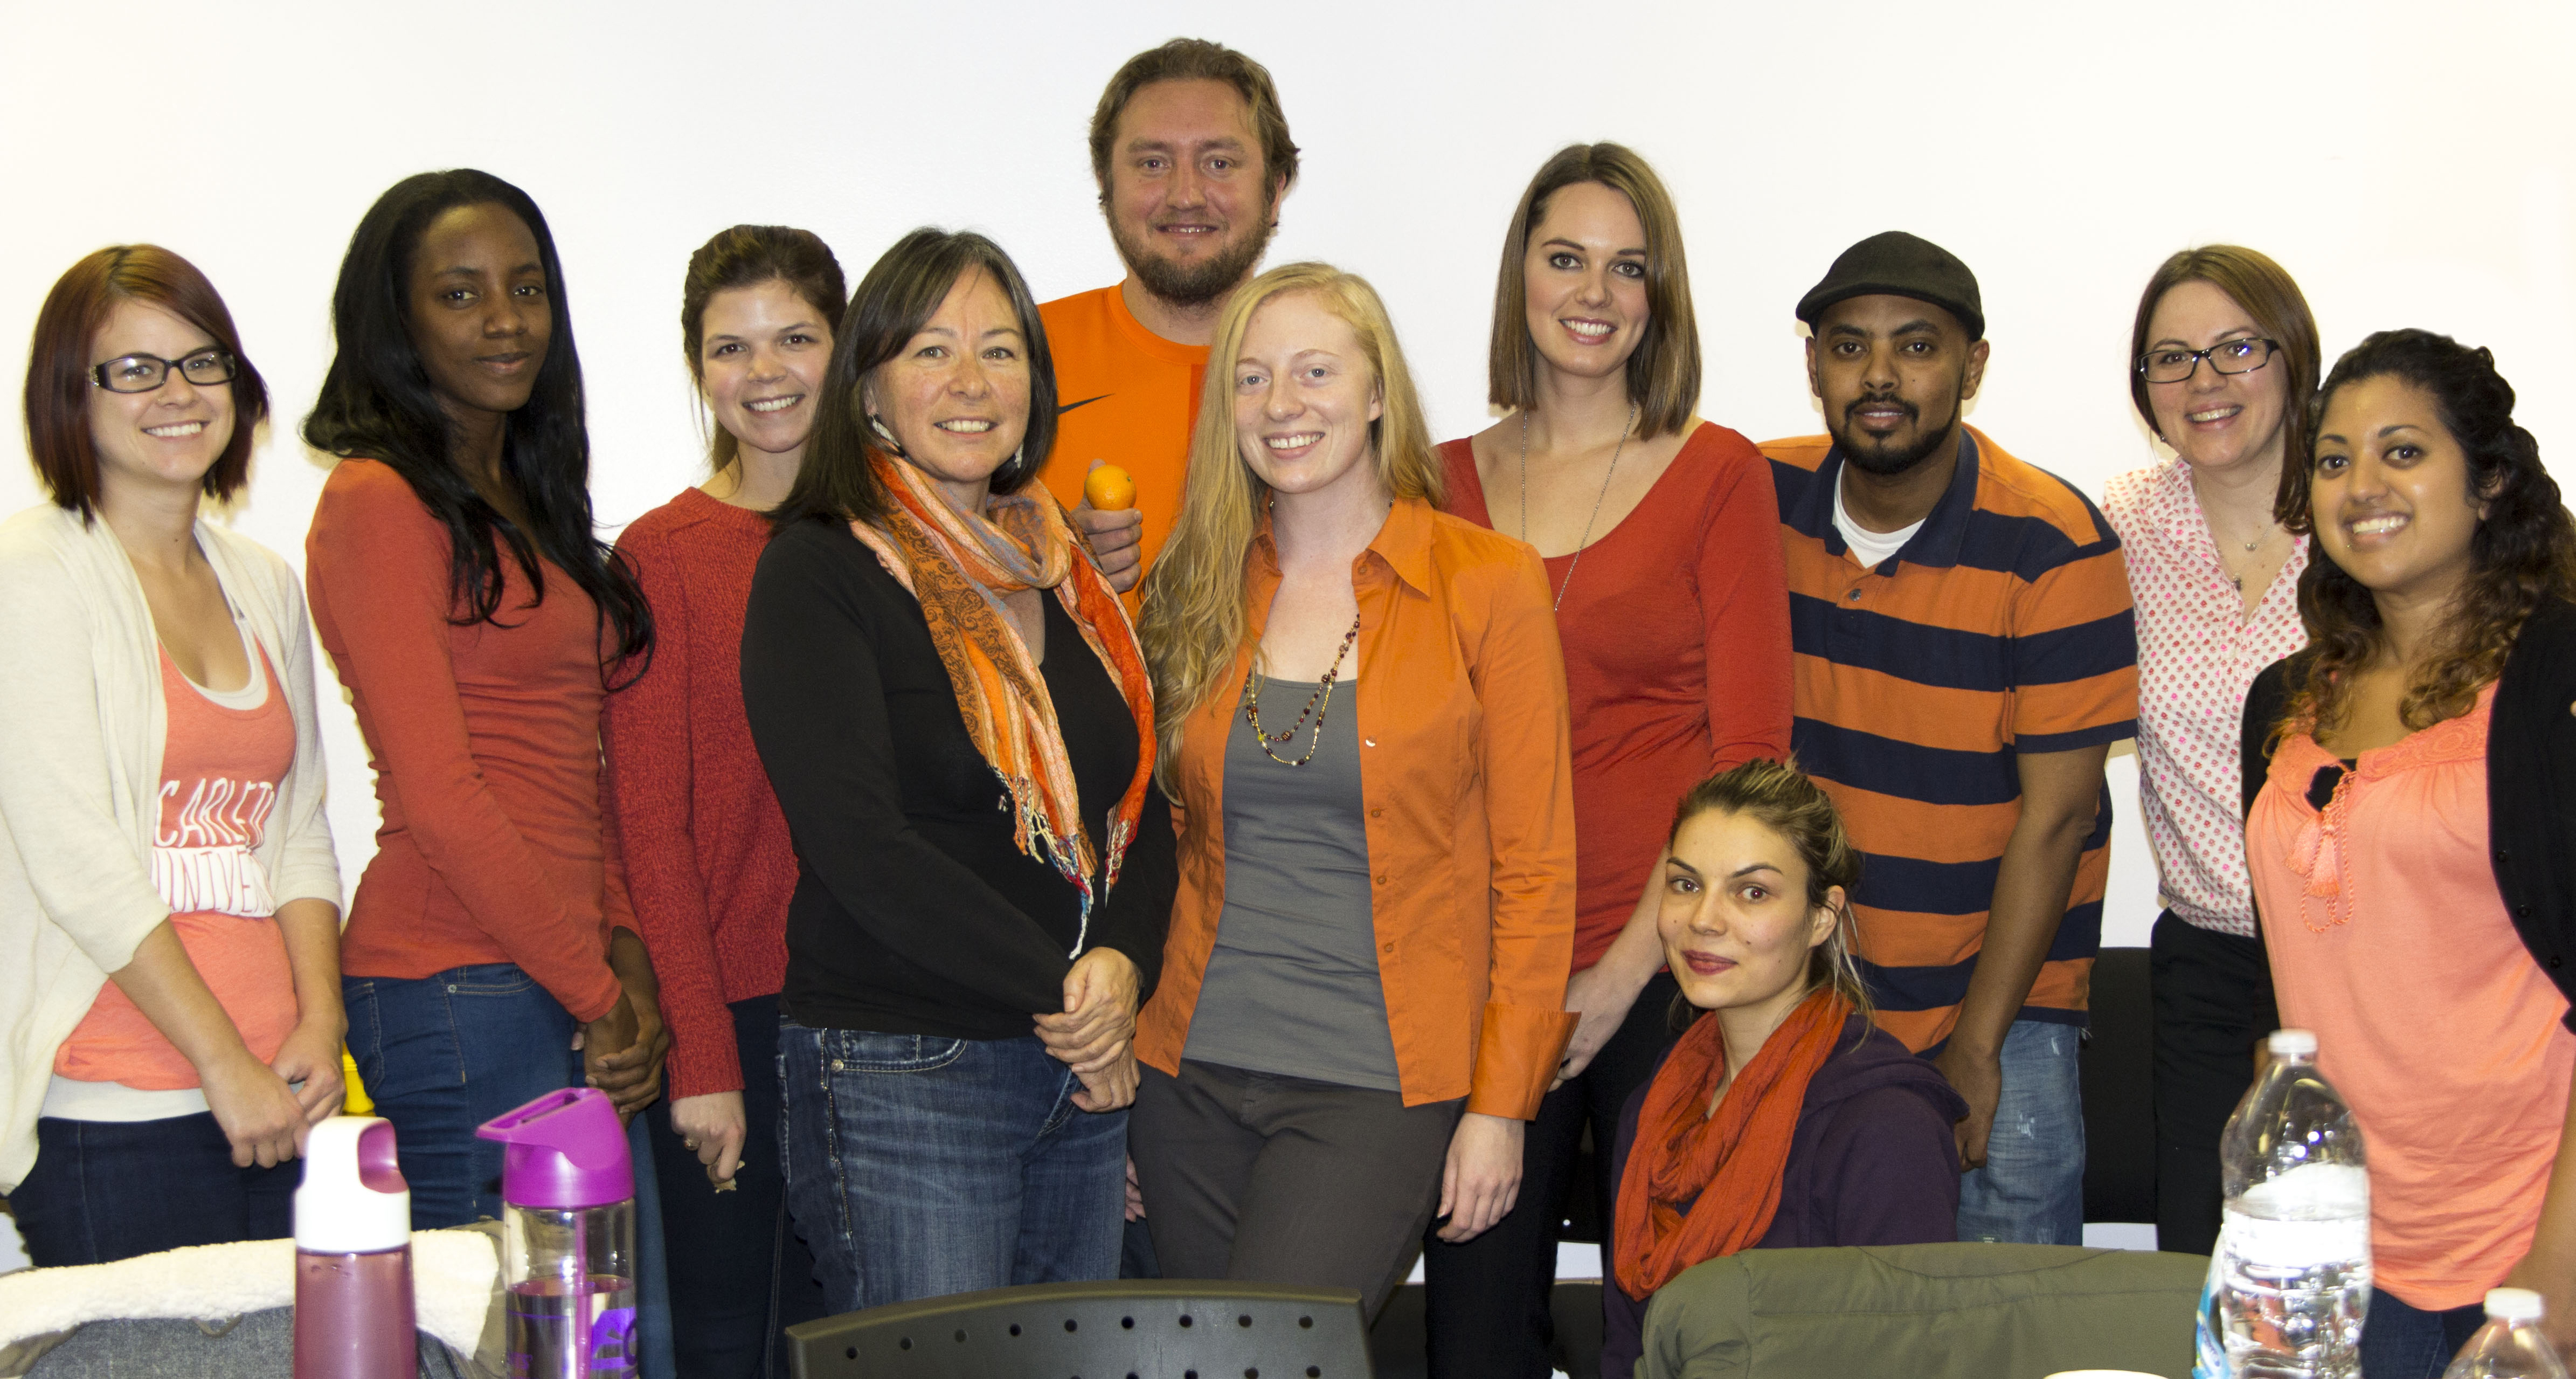 The SOWK 4204 class poses in their orange for a group photo.